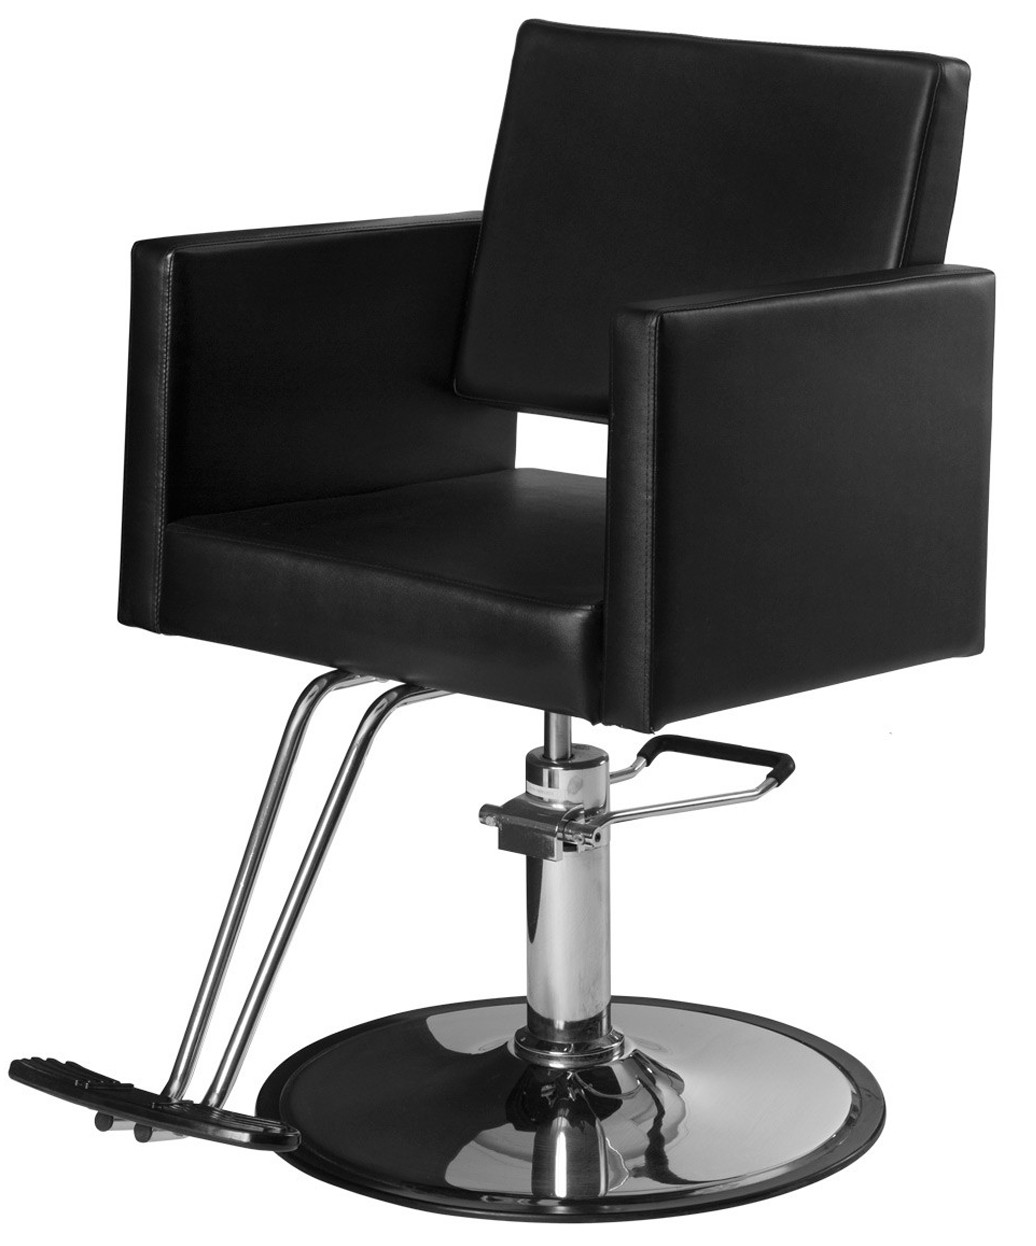 4 Operator Bali Hanger Salon Package Aria Styling Chair